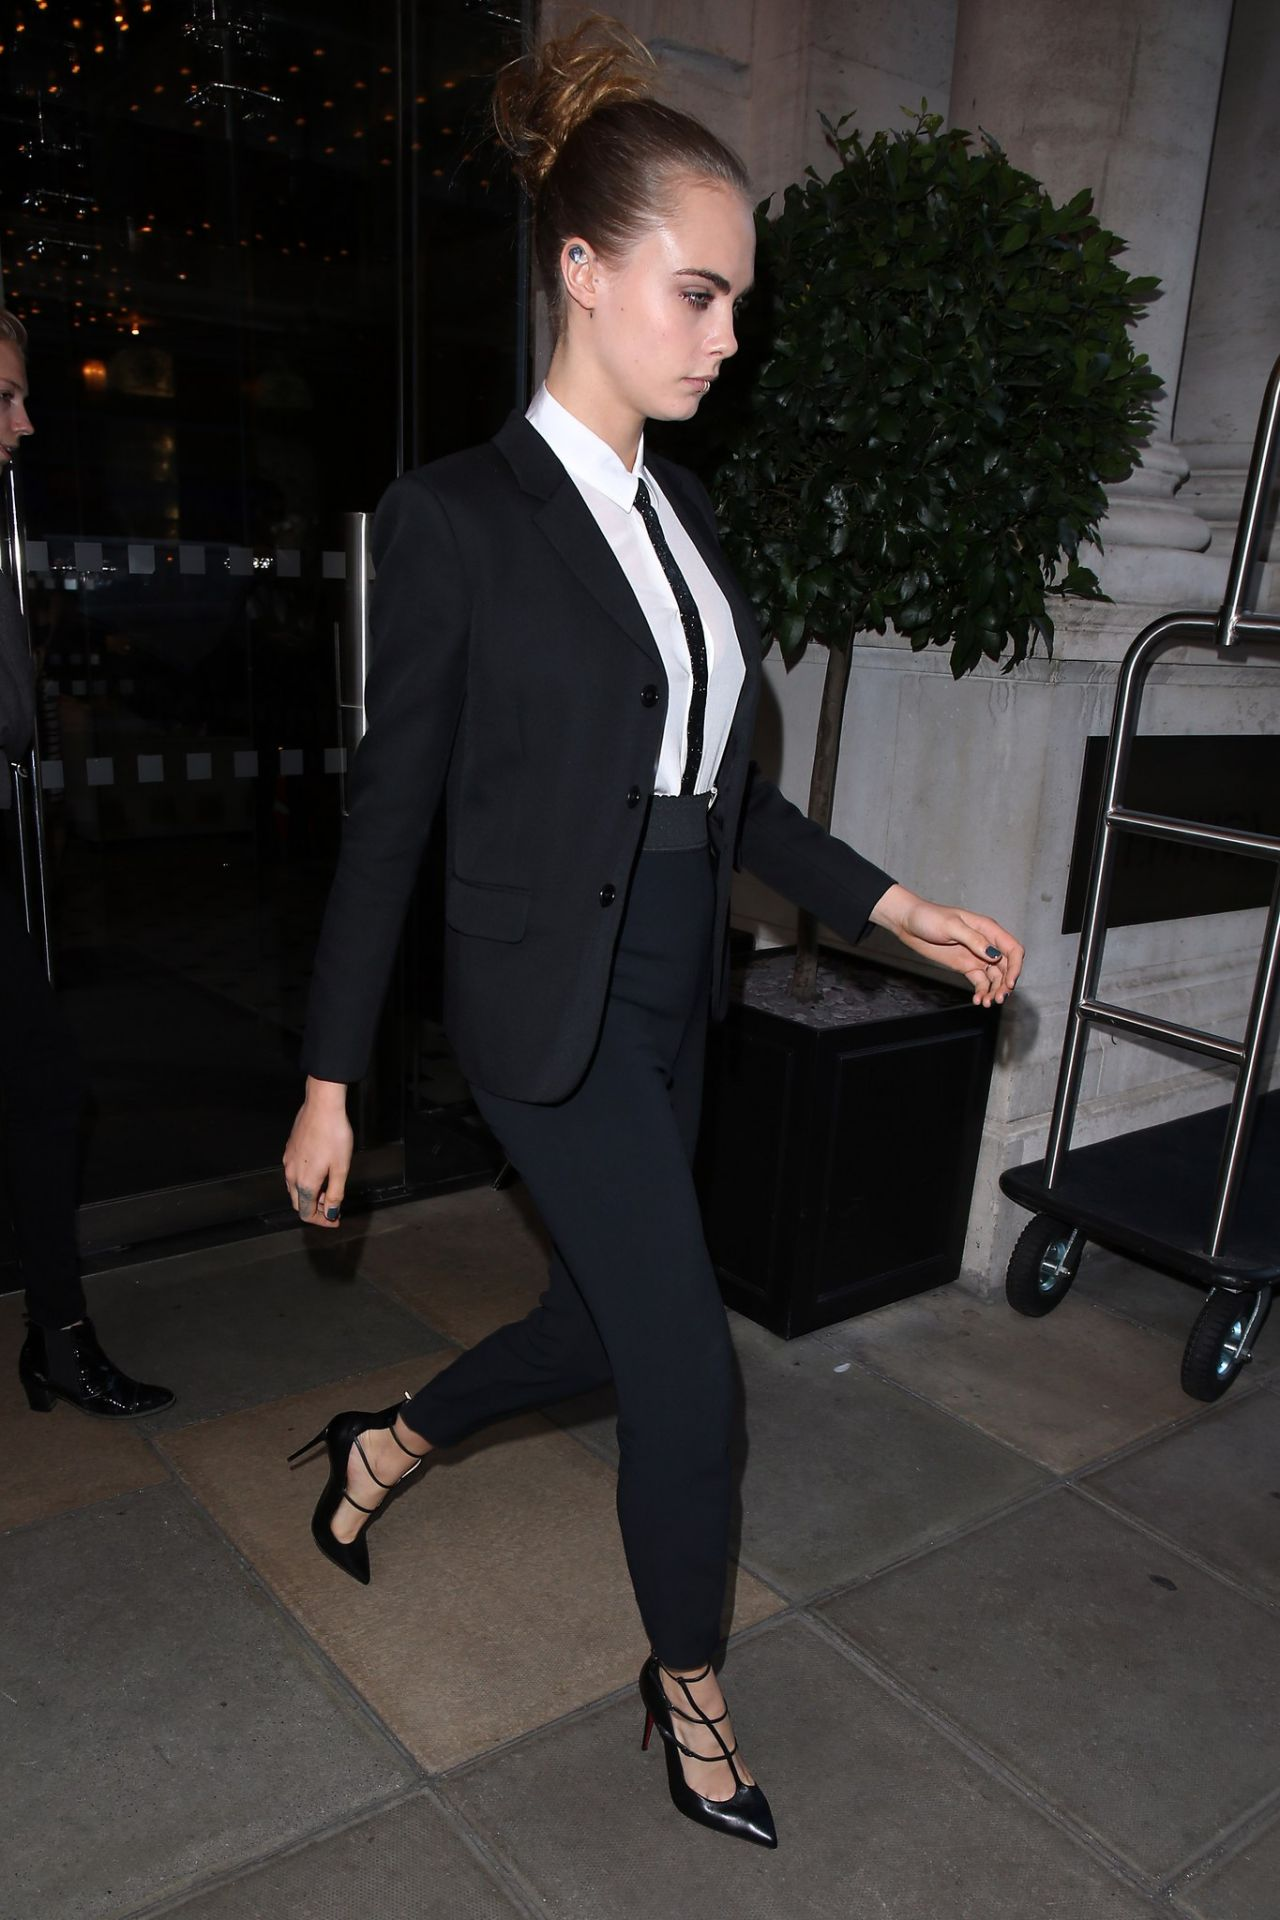 cara-delevingne-leaving-a-hotel-in-london-october-2015_2